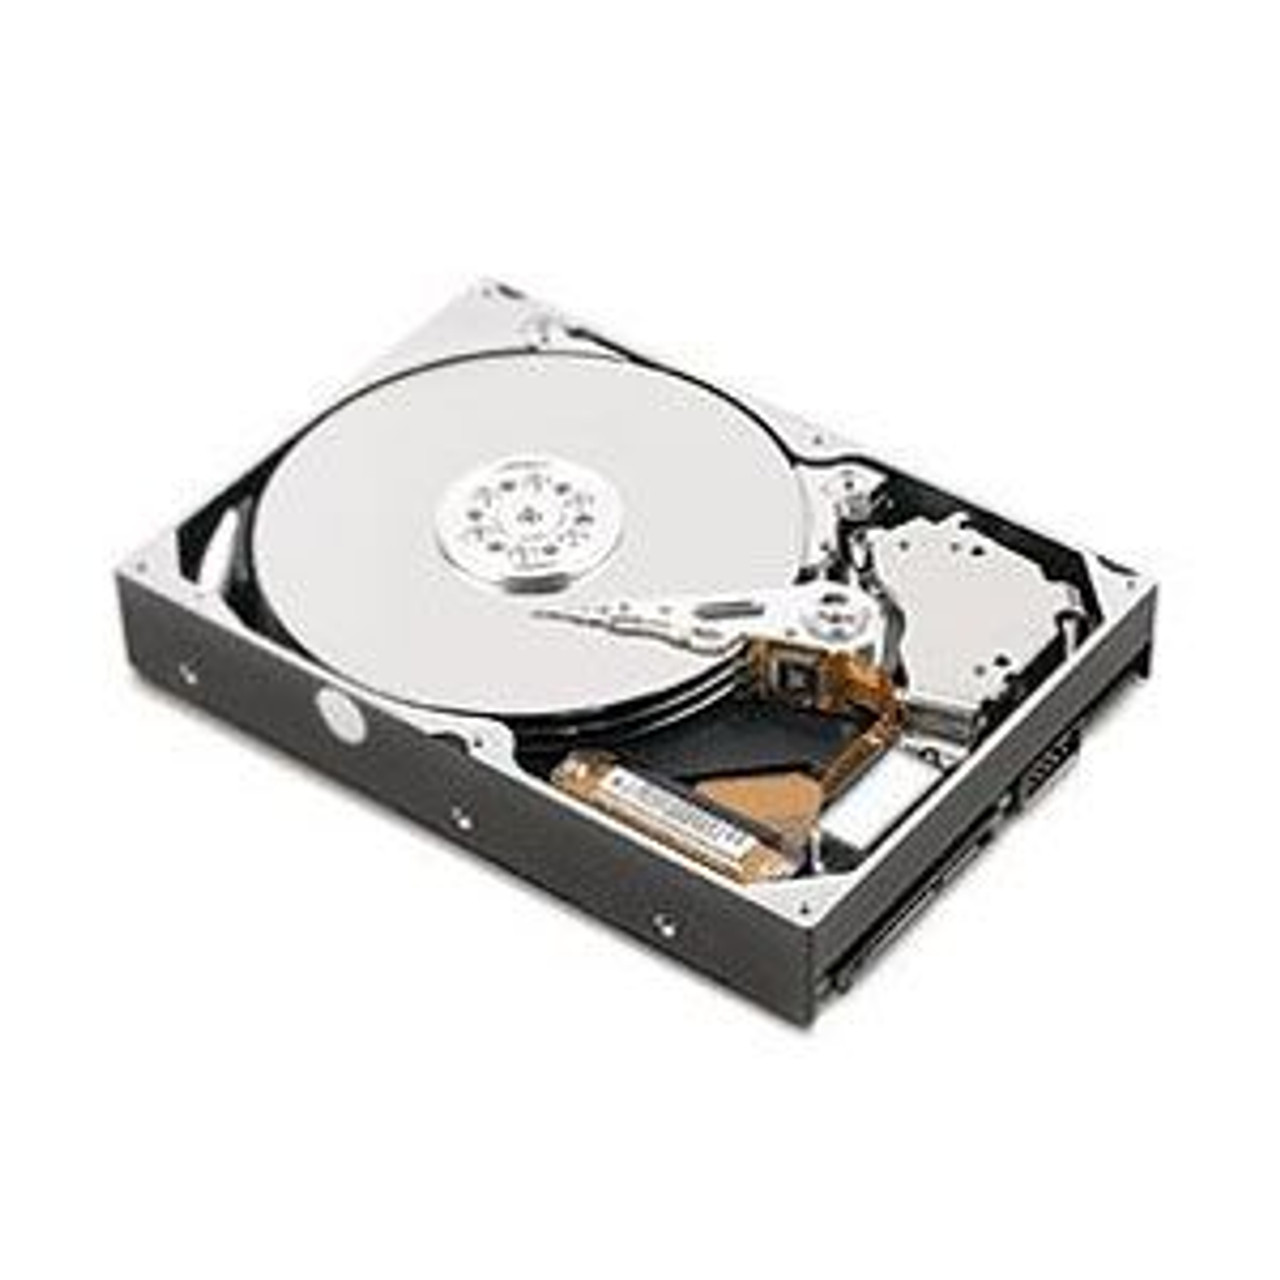 24P3665 IBM Ultra ATA//100 ATA-6 Internal Hard Drive 24P3665